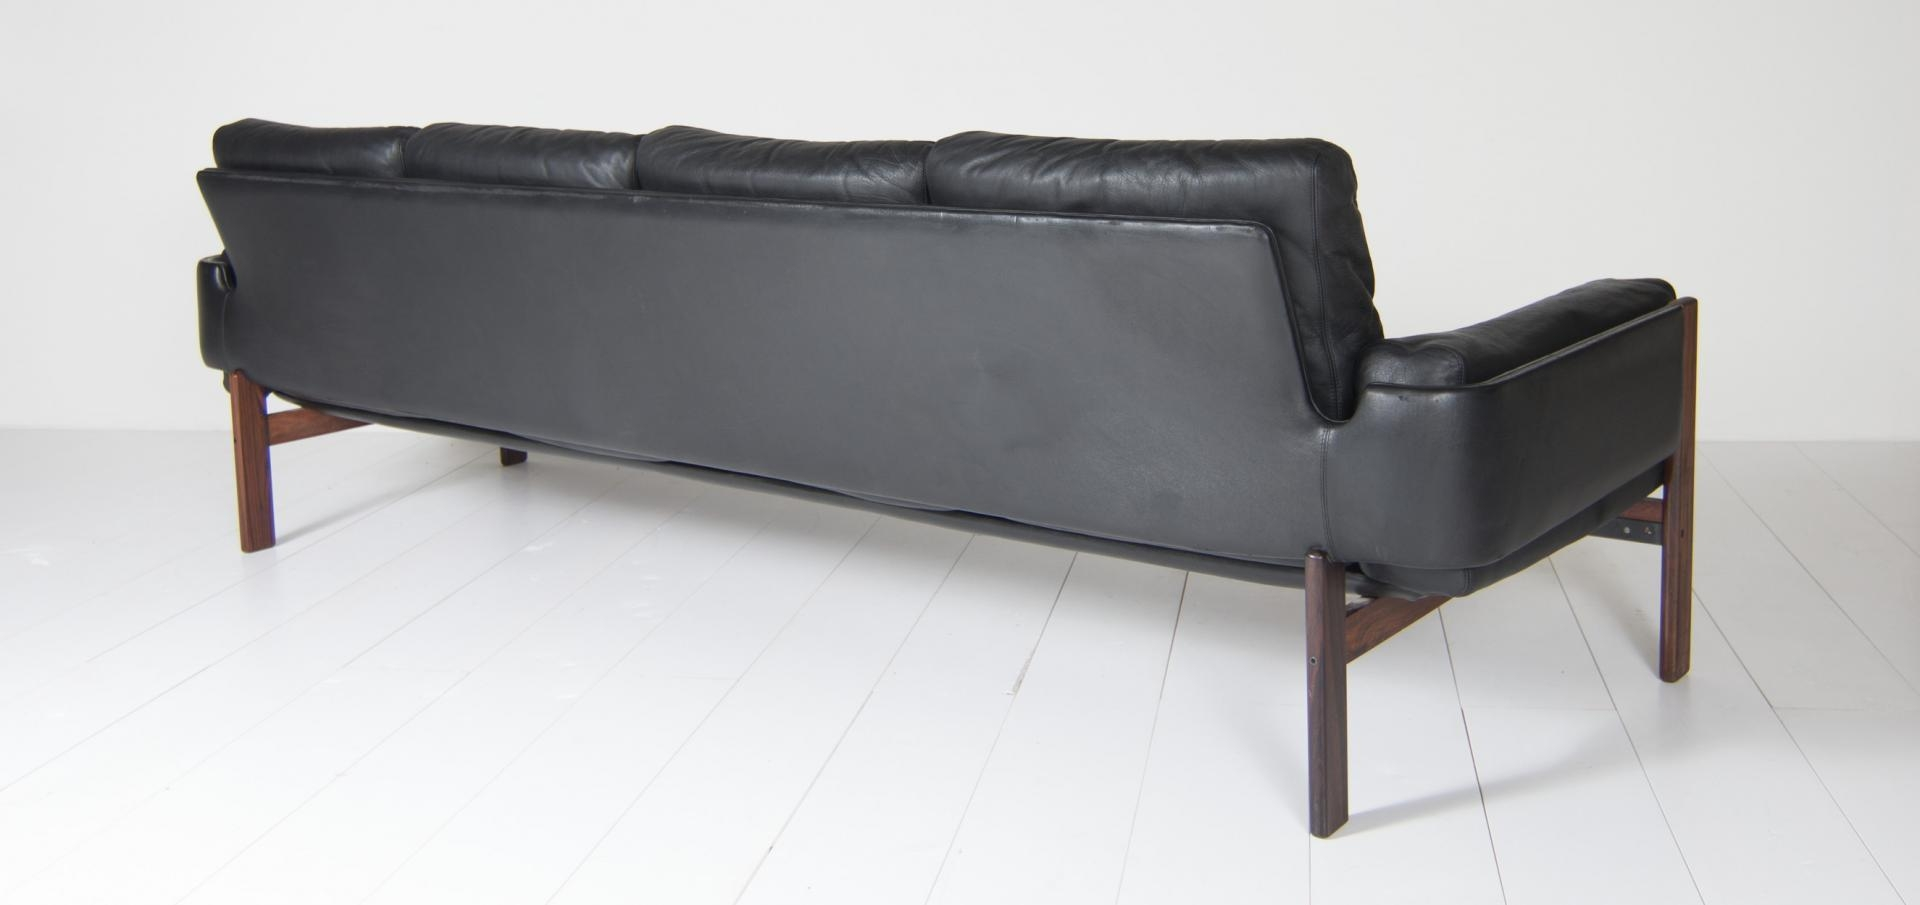 Four Seater Black Leather Sofasven Ivar Dysthe For Dokka For Pertaining To 4 Seat Leather Sofas (Image 5 of 20)